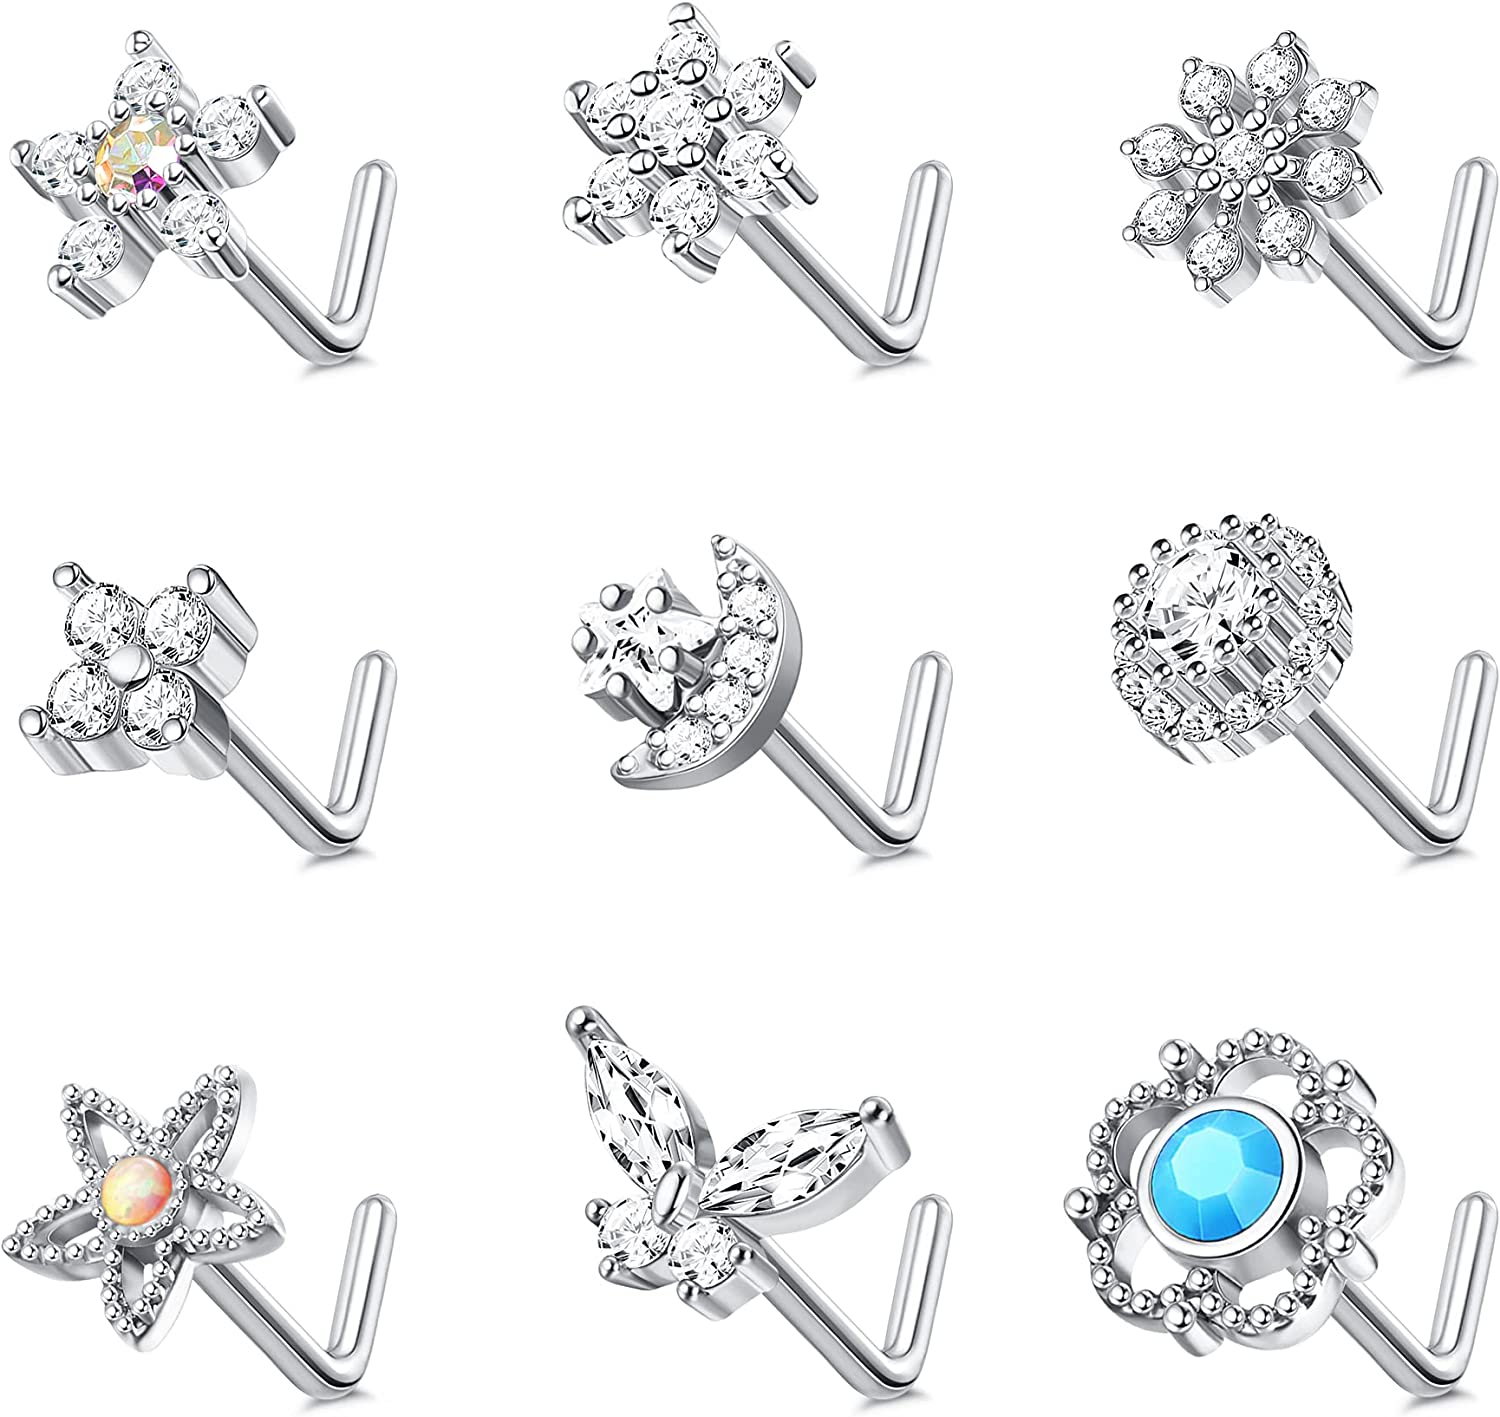 IRONBOX 9Pcs 20G Nose Rings Sale item Women for Studs Stainless Steel Limited time sale